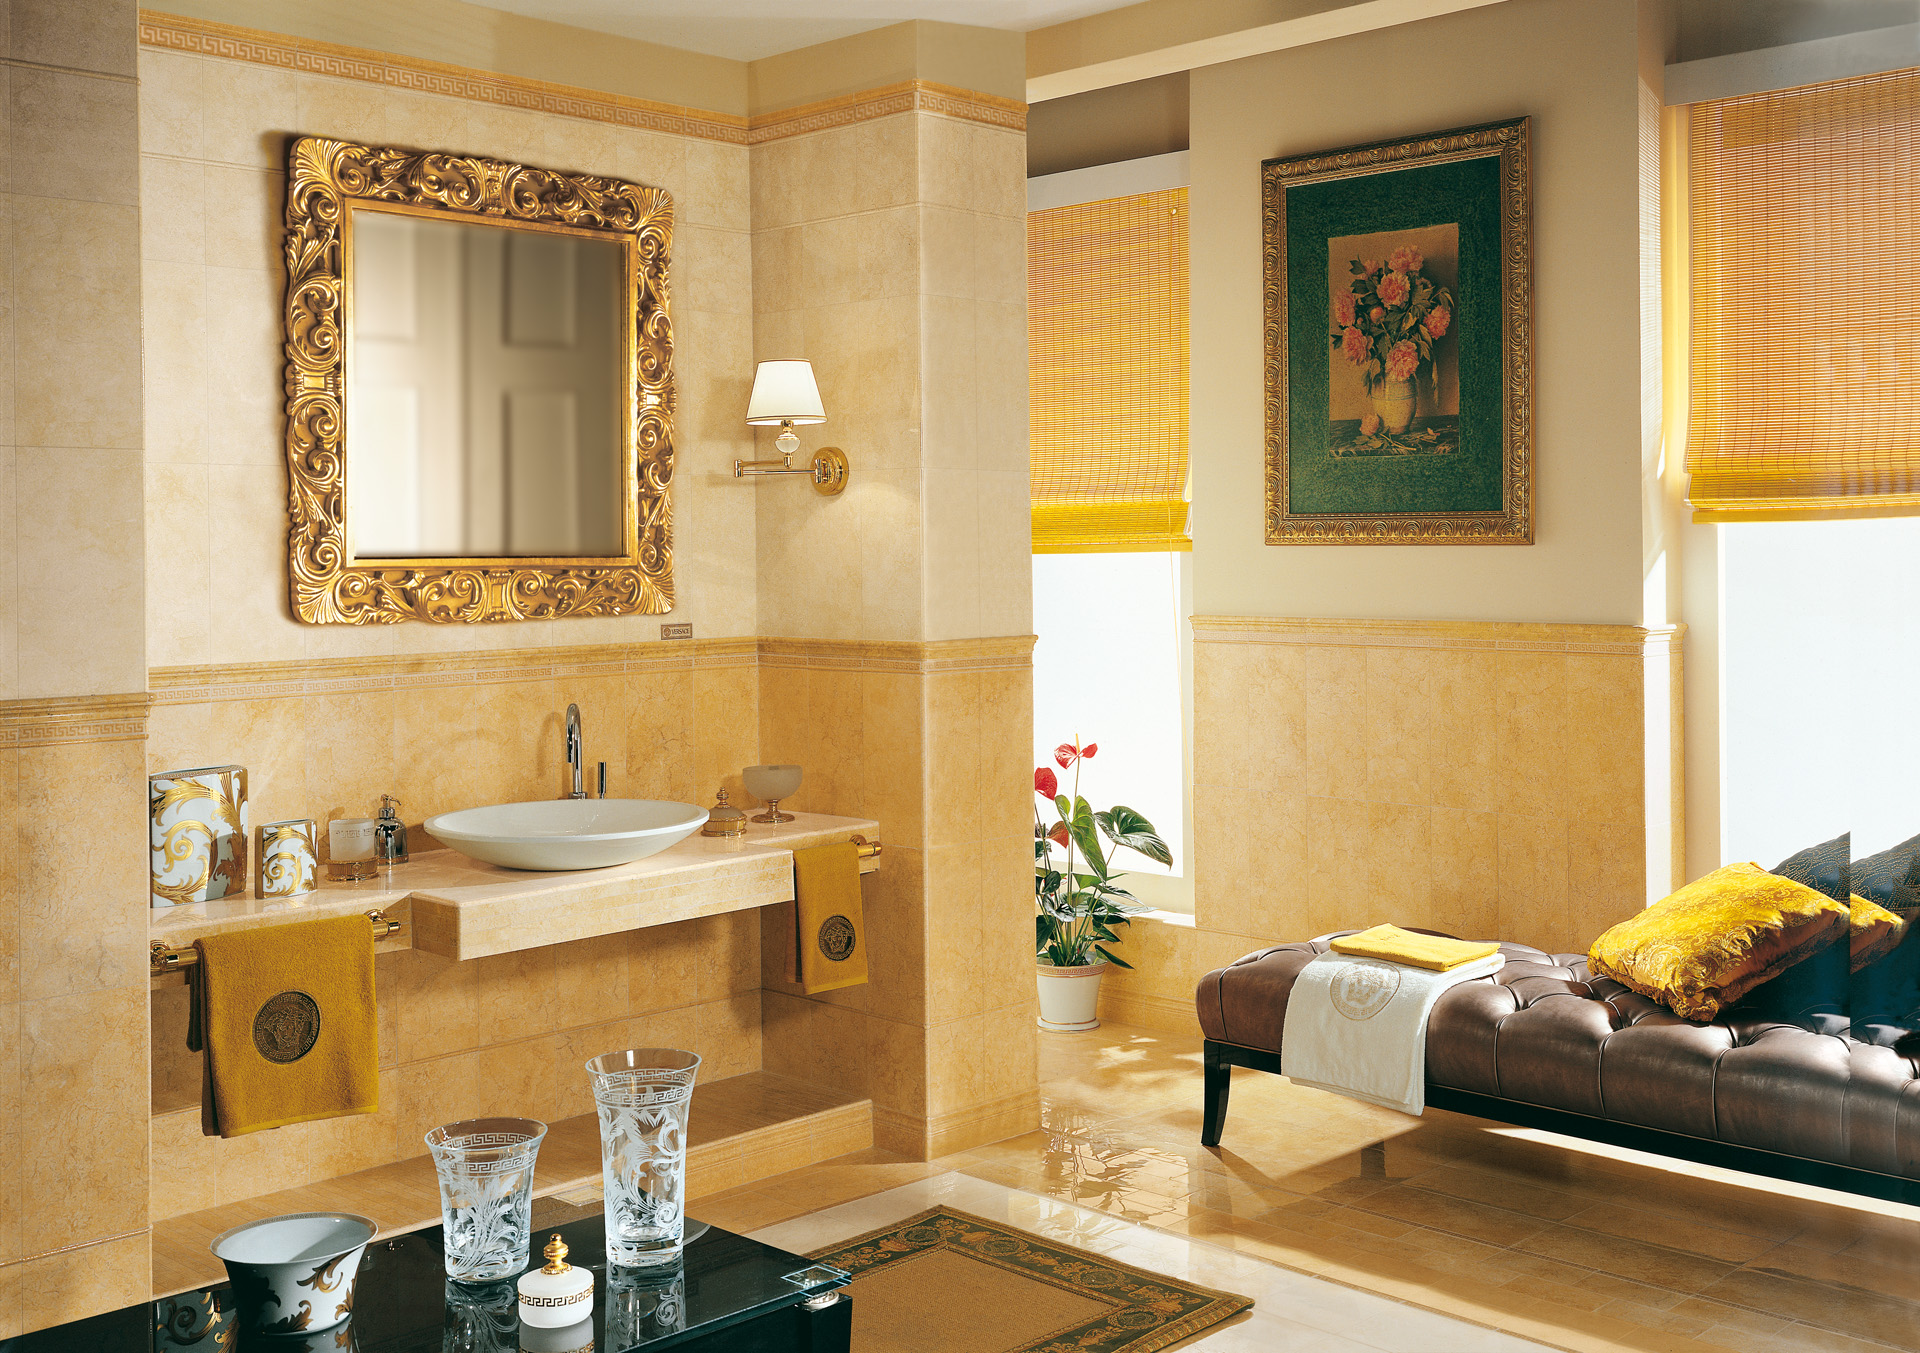 Versace home tiles, Versace ceramic tiles, Versace ceramic tile